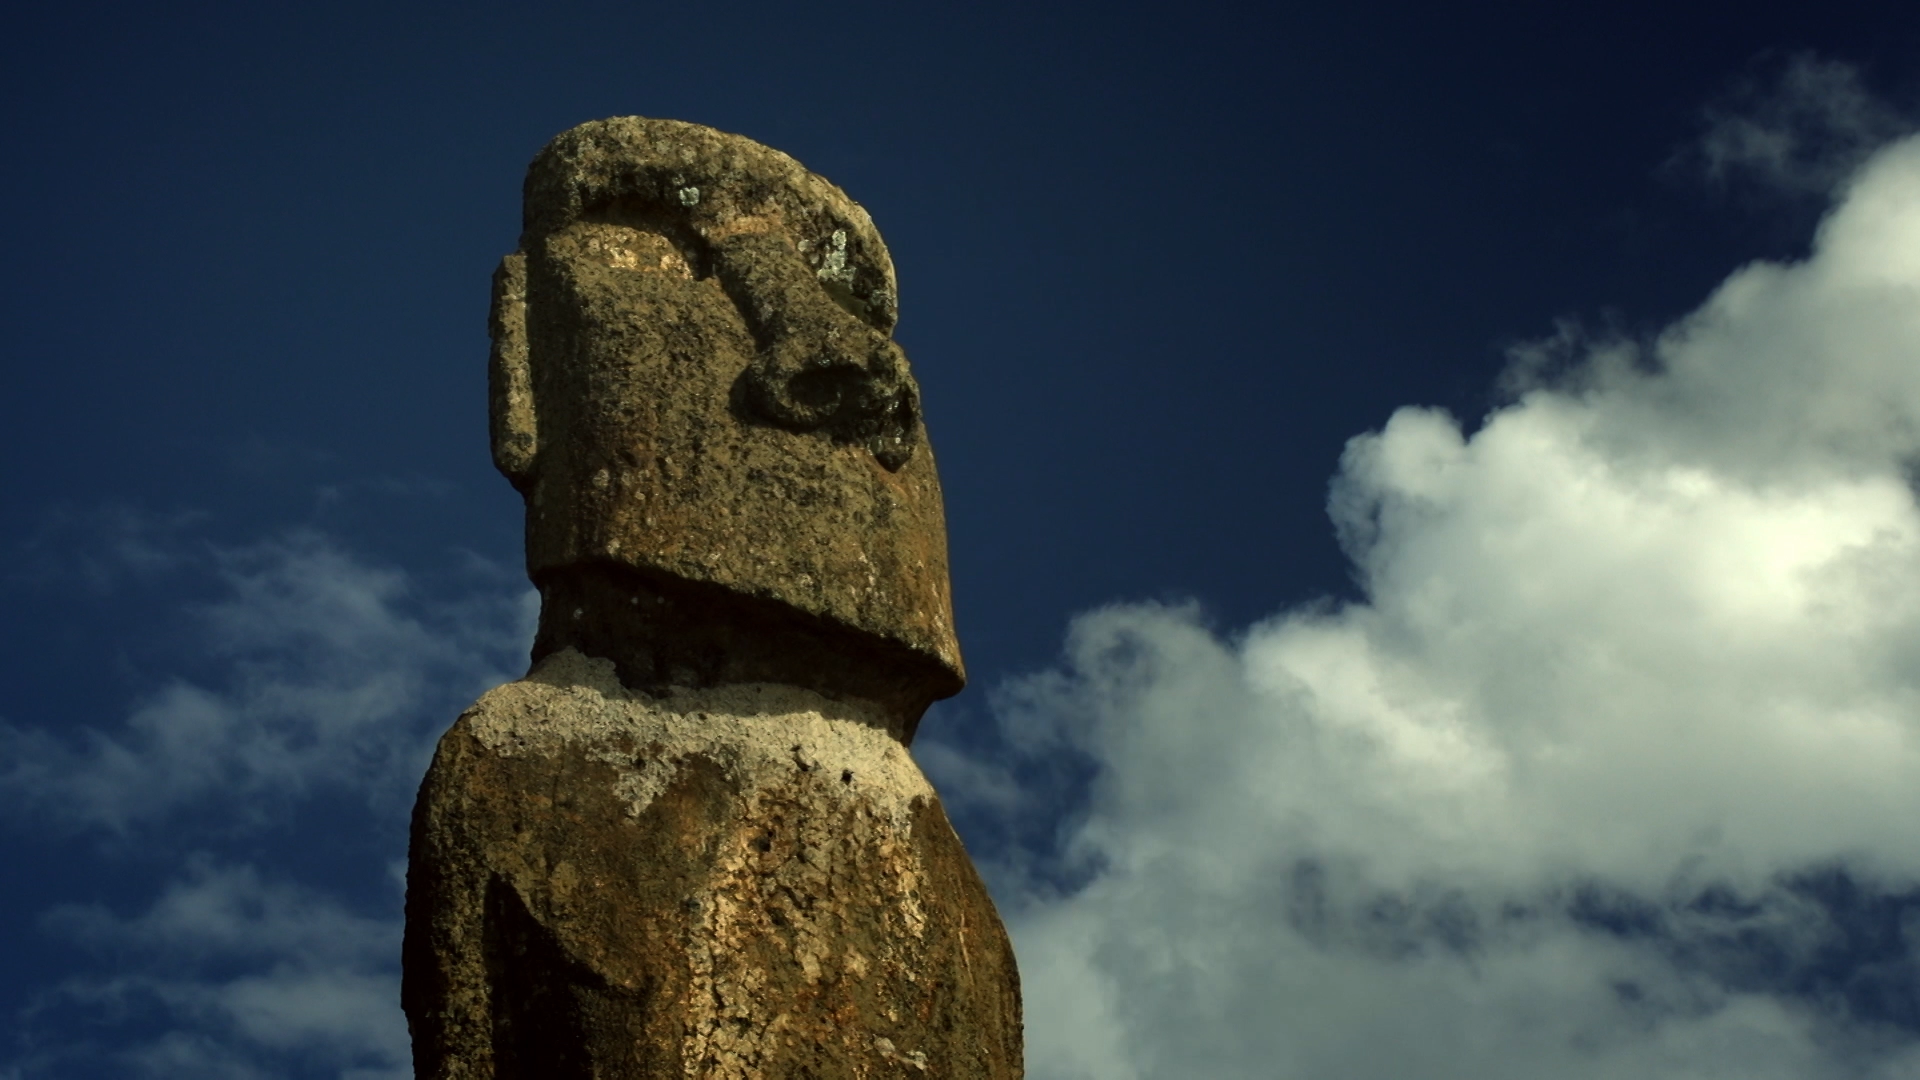 B1 Moai Heads, The Pride of Rapa Nui